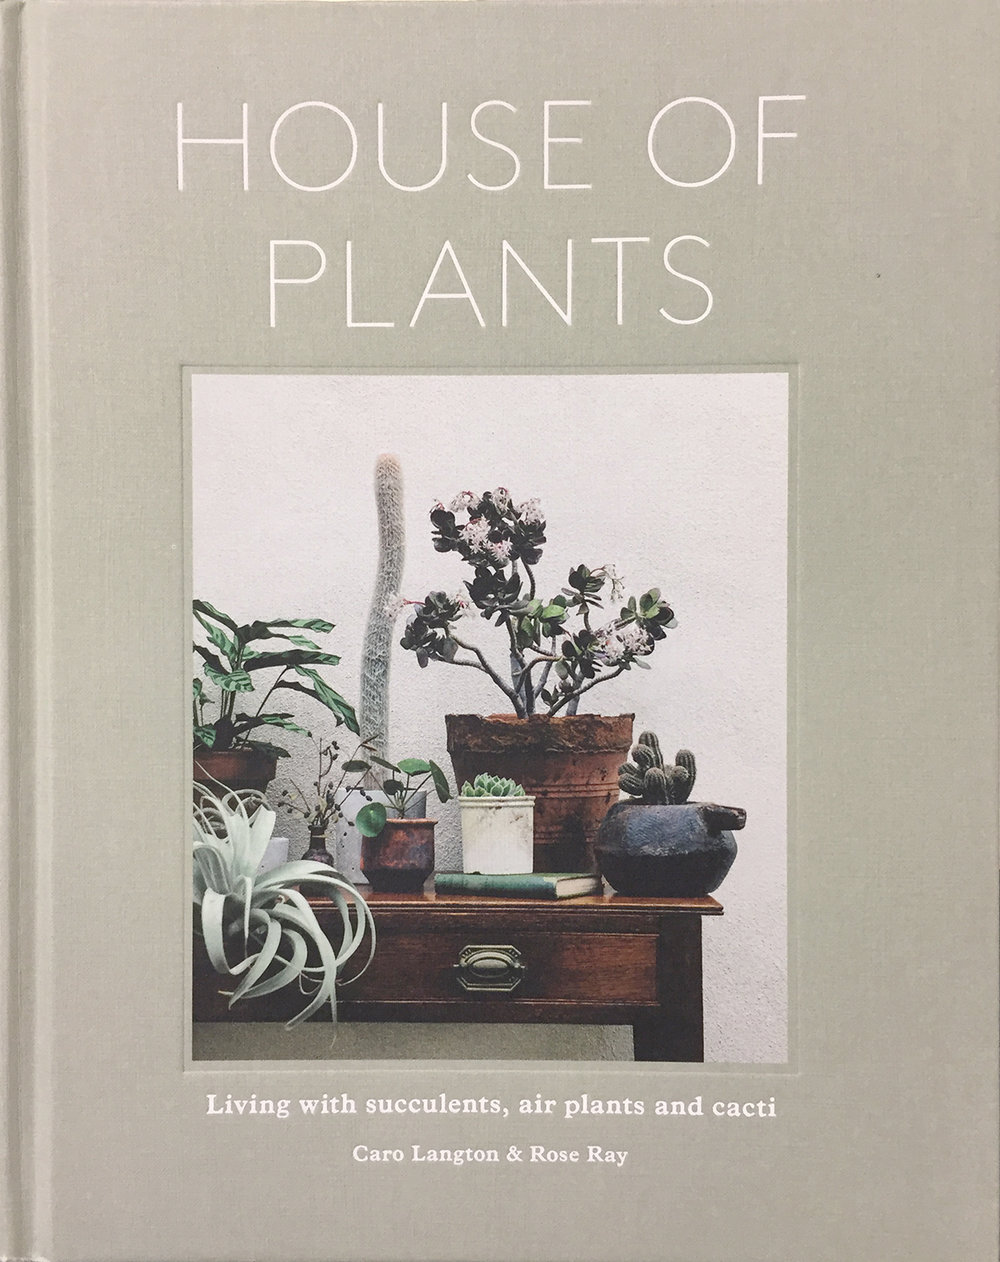 HOUSEPLANTS BOOK COVER.jpg